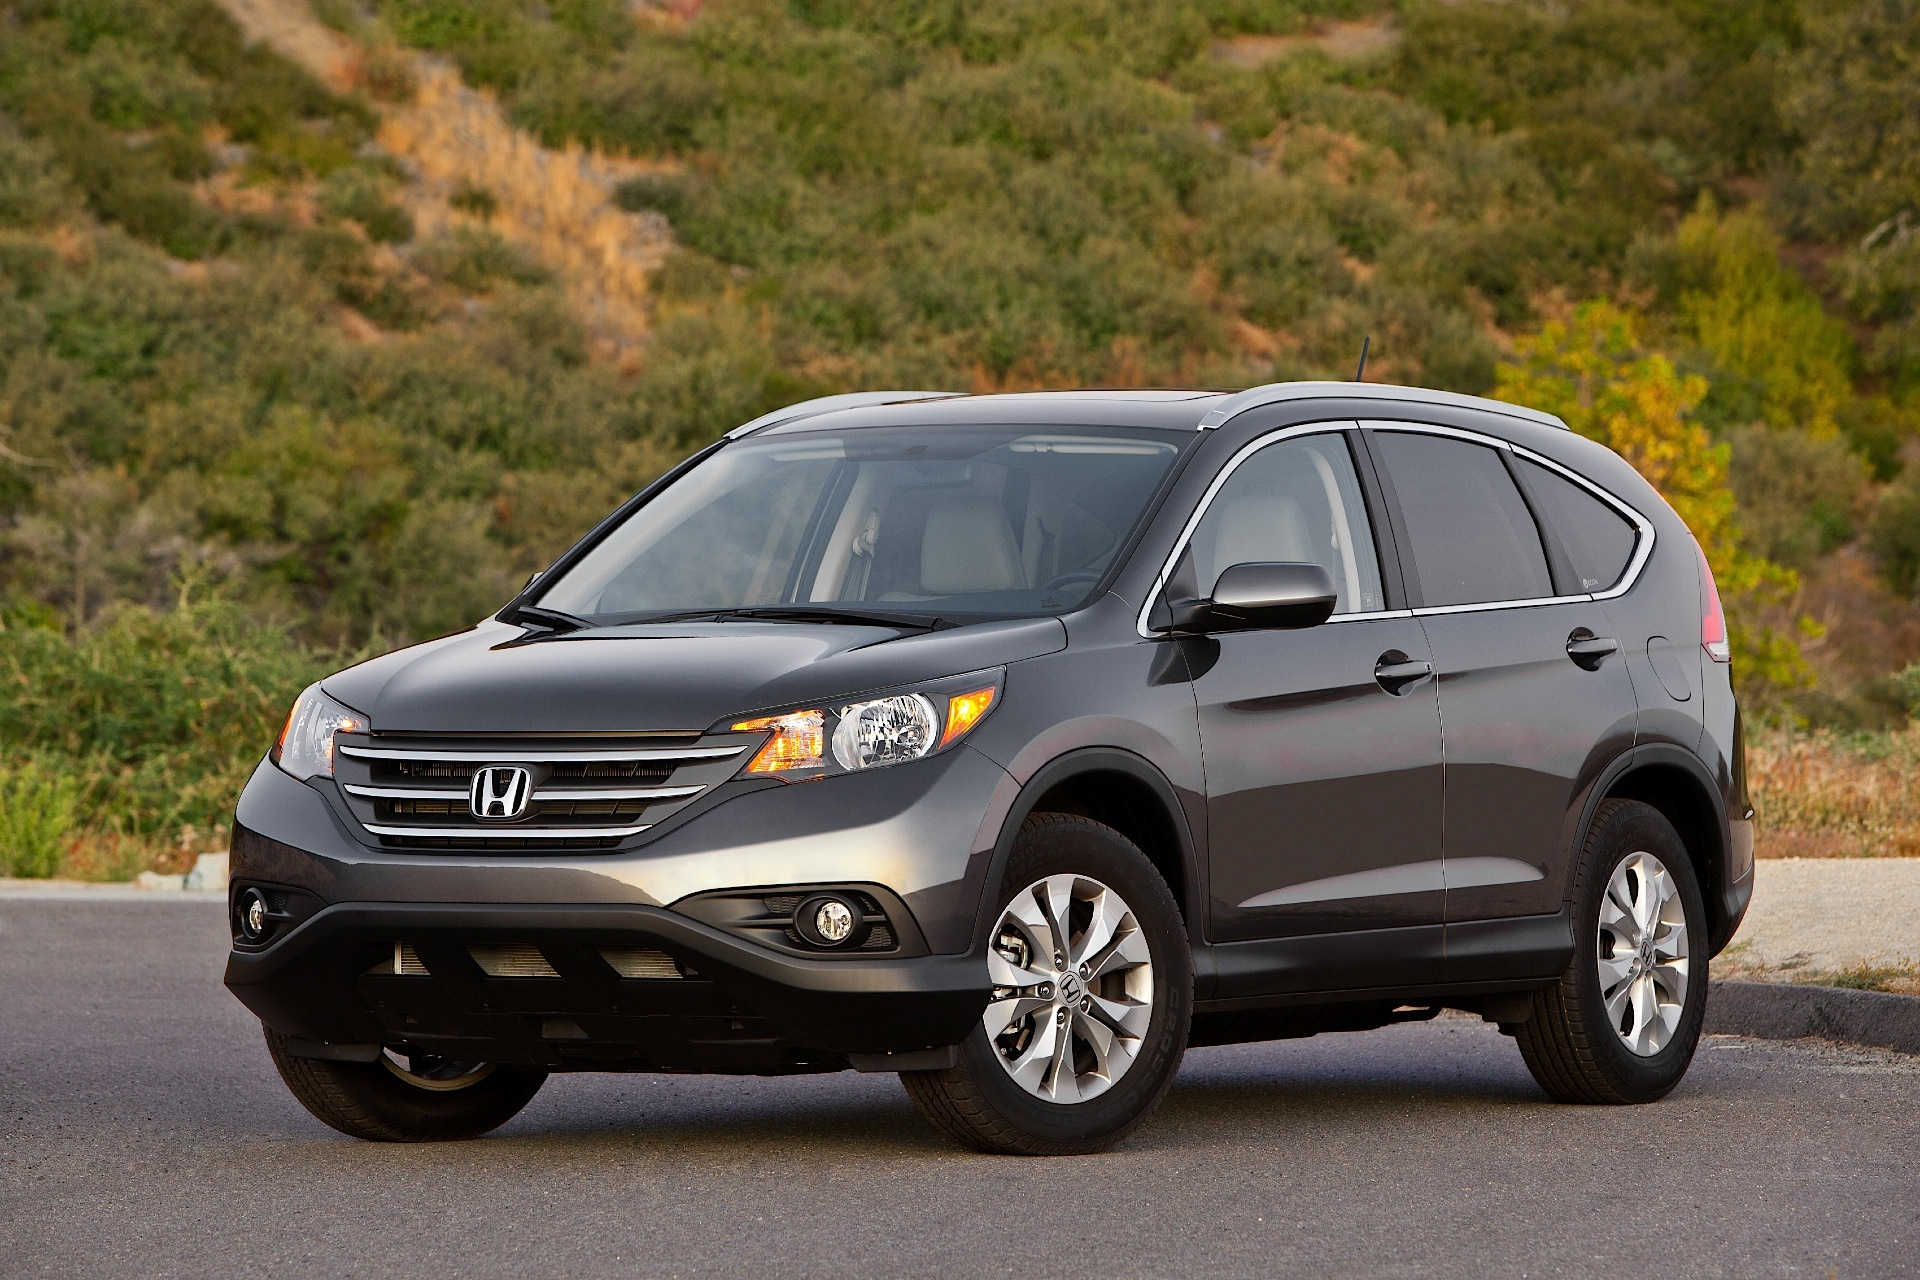 Honda CR-V 2.4 2011 photo - 2